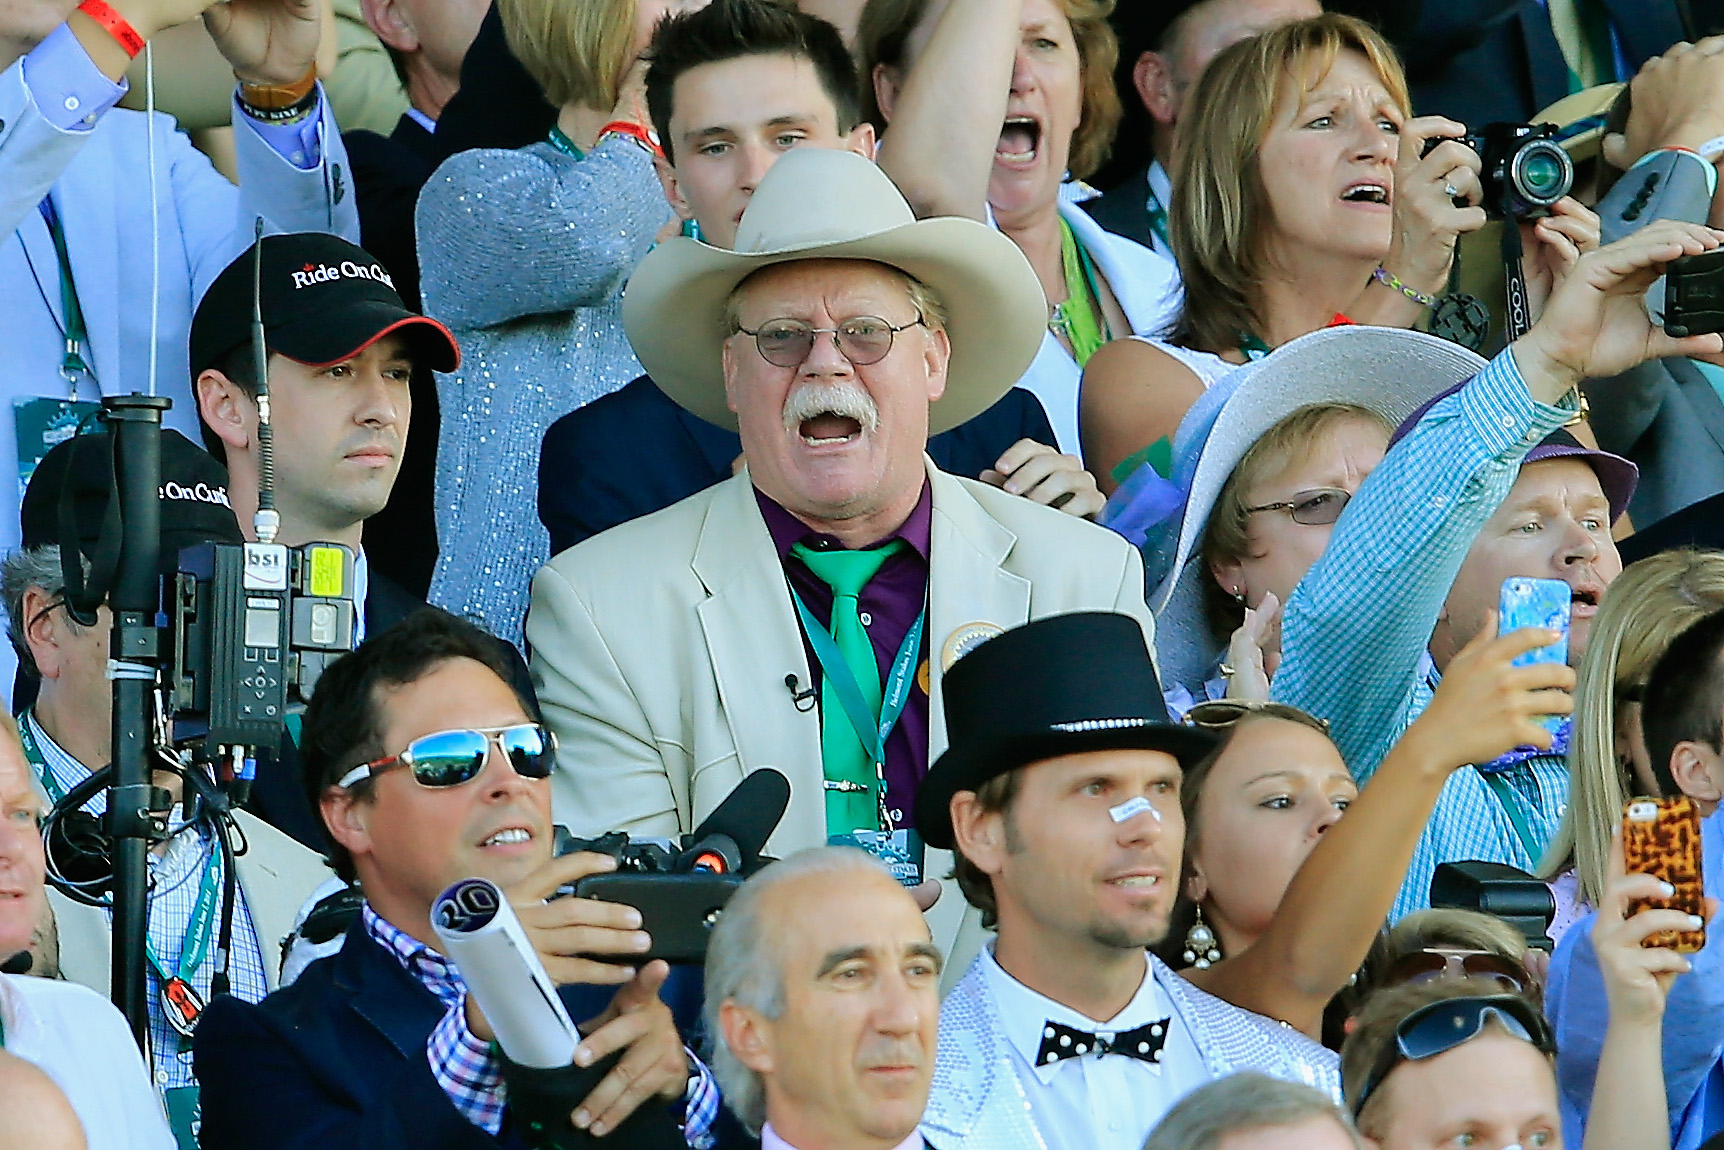 Steve Coburn, co-owner of California Chrome, not happy while watching the 146th running of the Belmont Stakes at Belmont Park on June 7, 2014 in Elmont, New York.